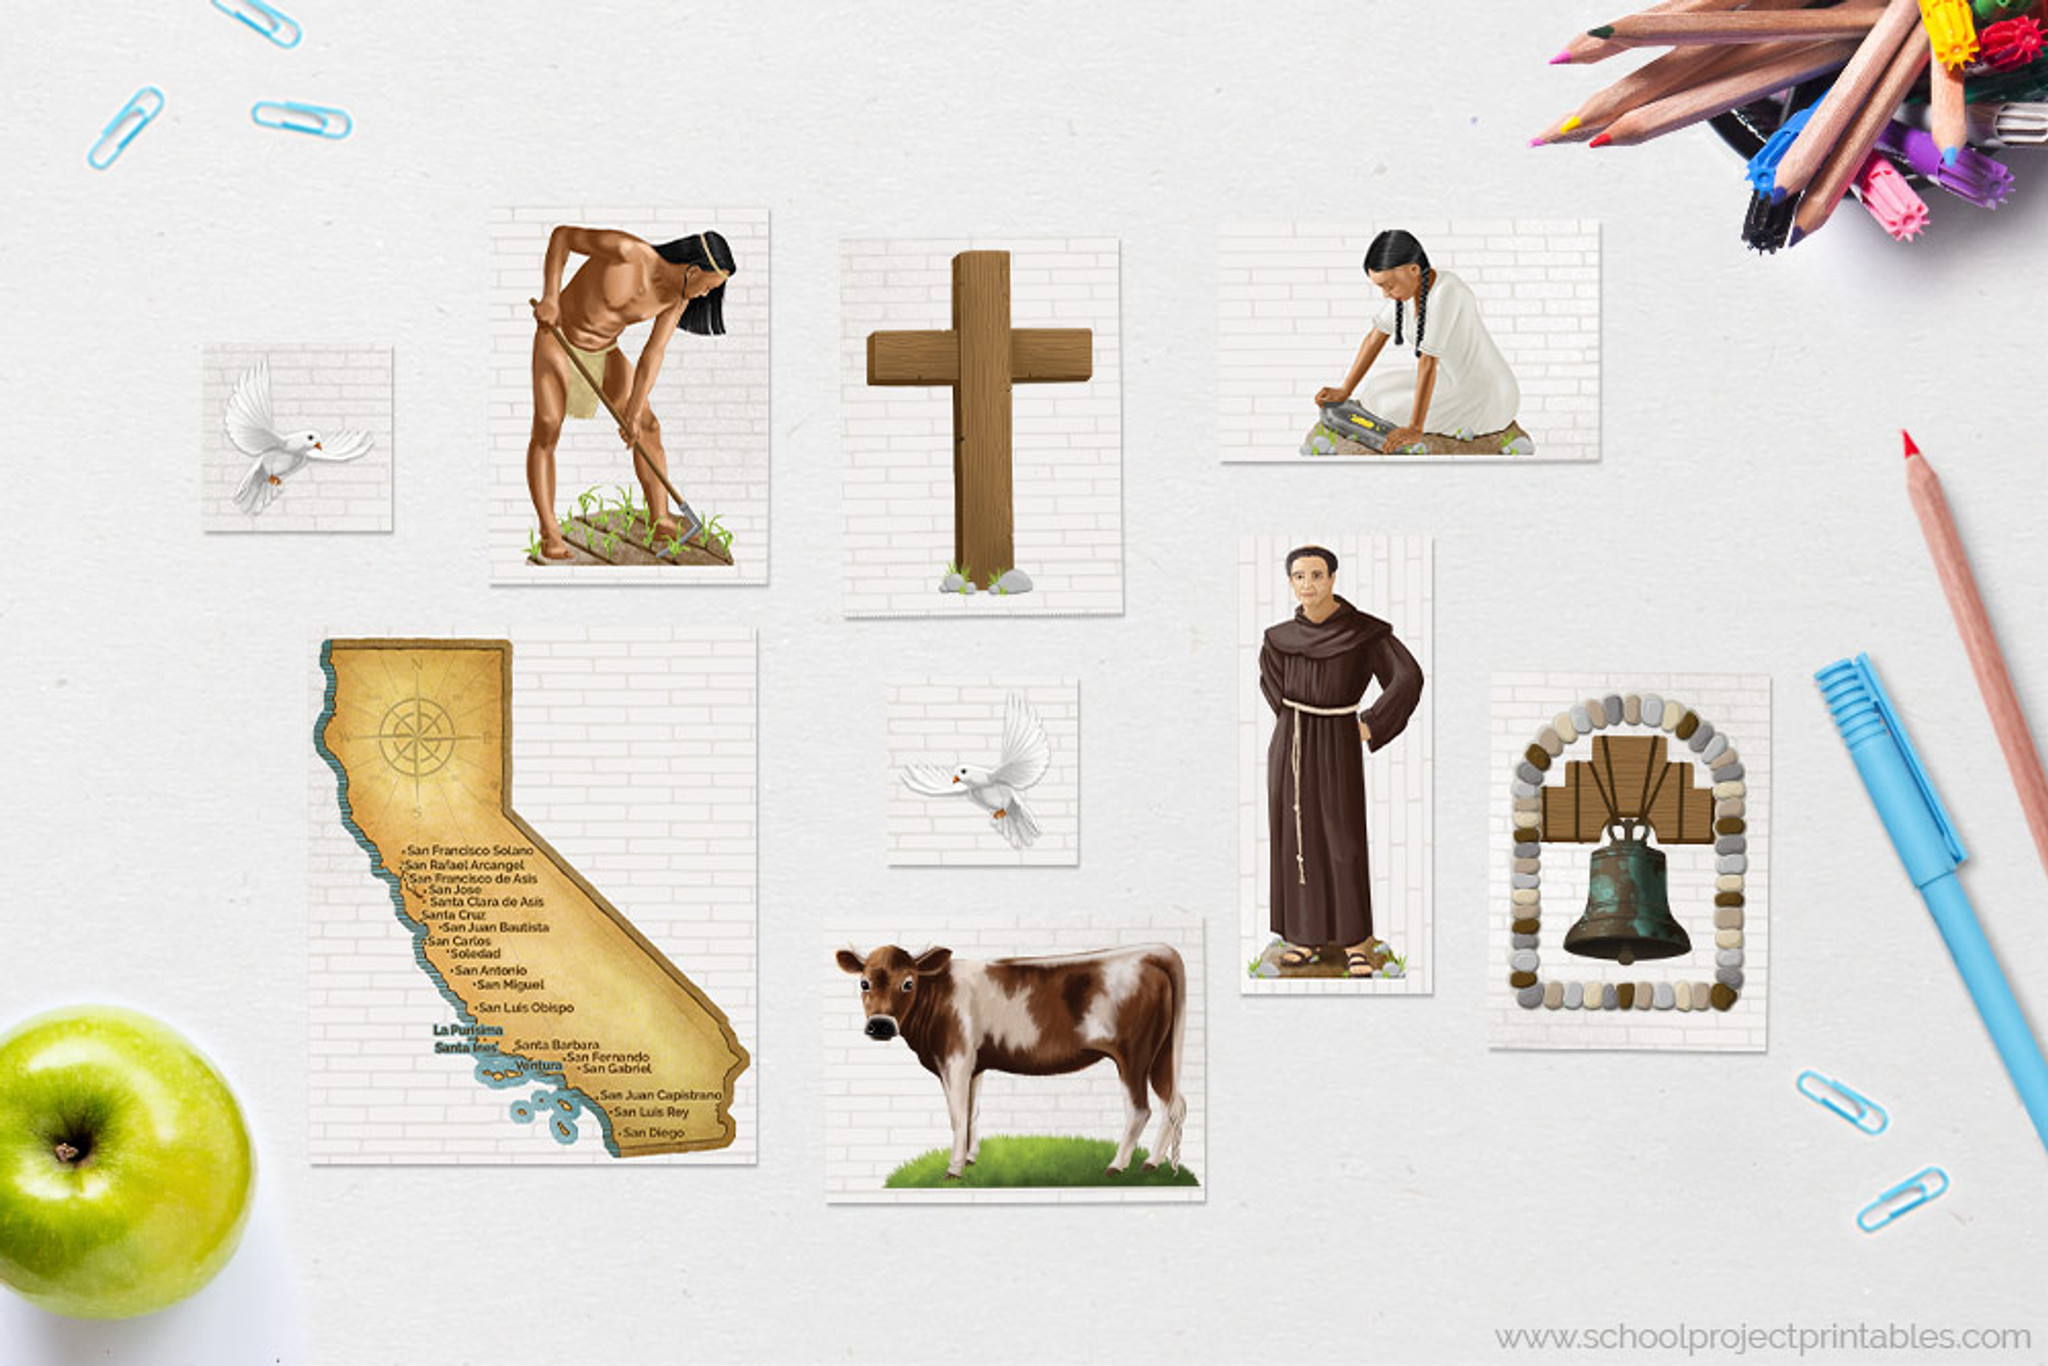 Map Of California Missions Locations.California Missions Project Icons